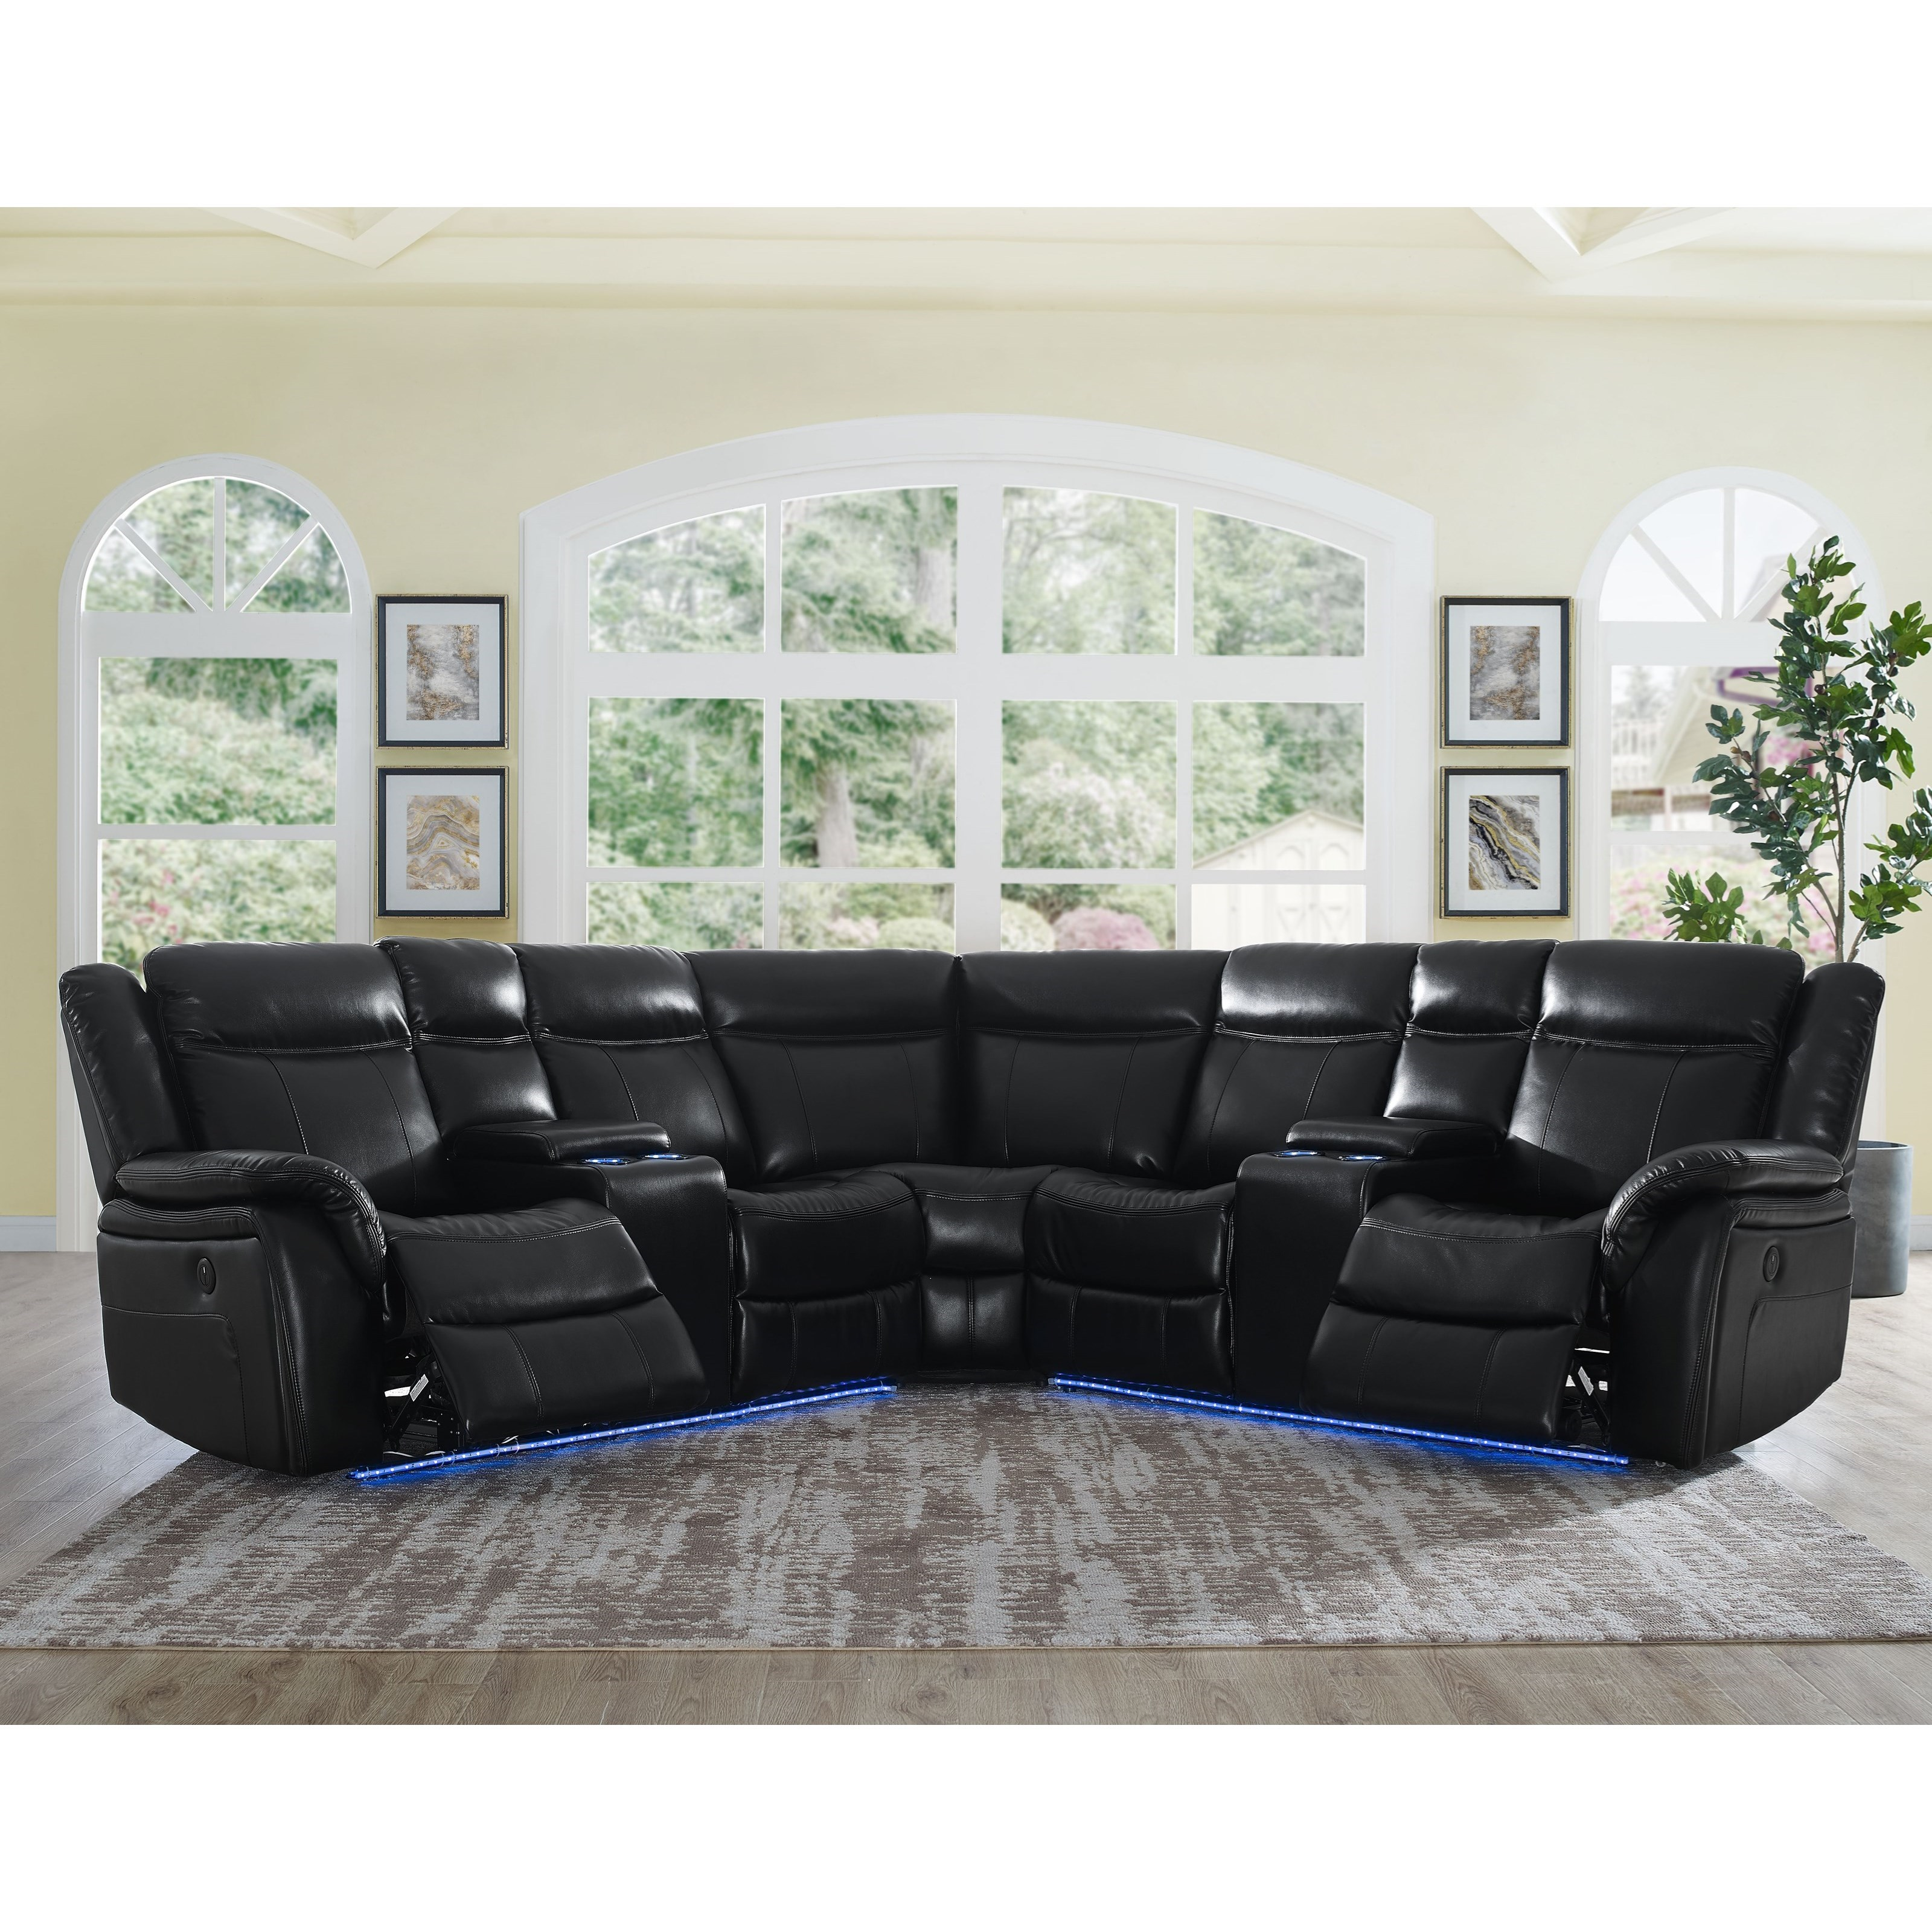 Levin 4 Seat Power Reclining Sectional Sofa by Steve Silver at Darvin Furniture